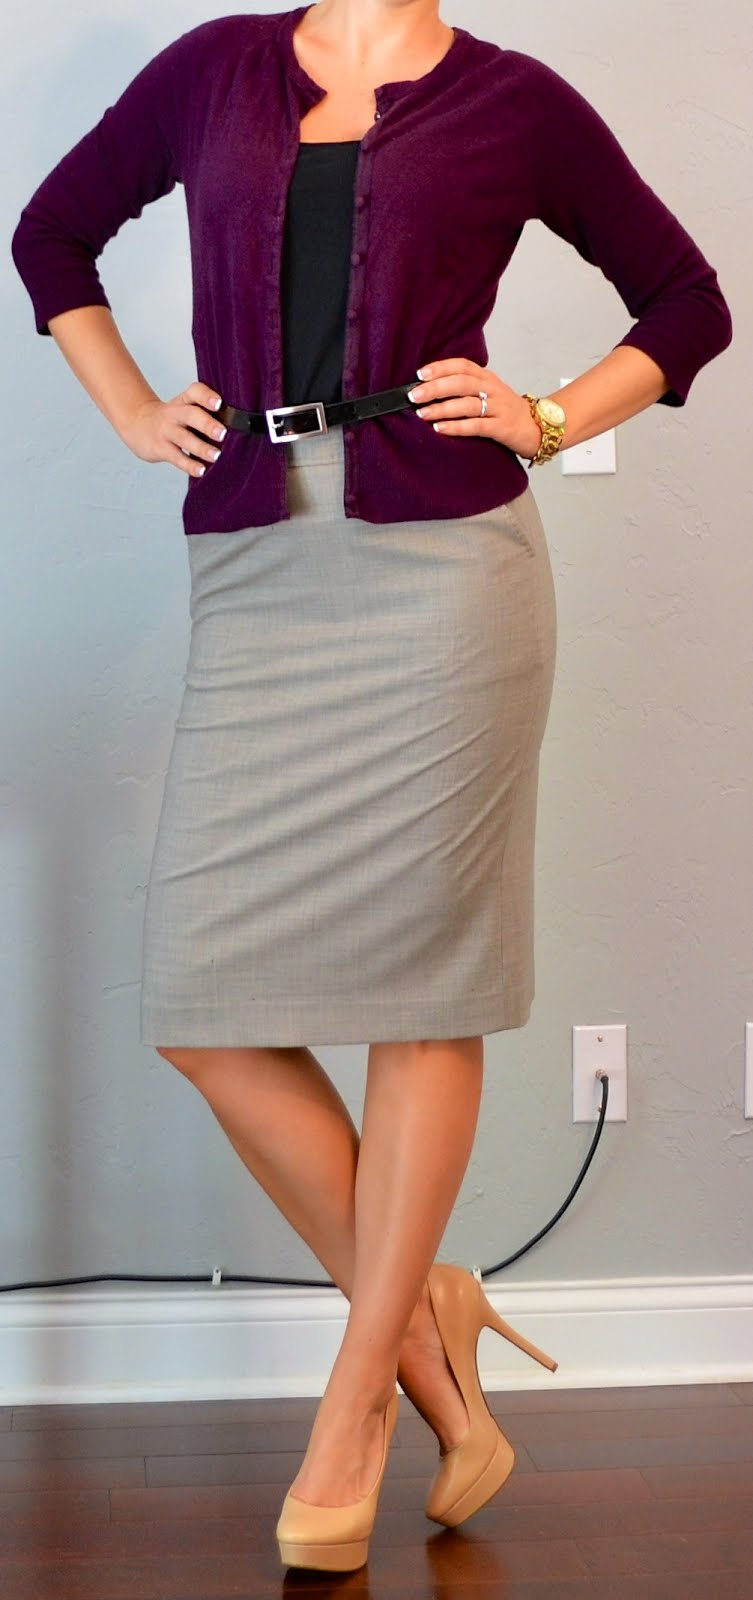 Enjoy free shipping and easy returns every day at Kohl's. Find great deals on Womens Grey Skirts & Skorts at Kohl's today!